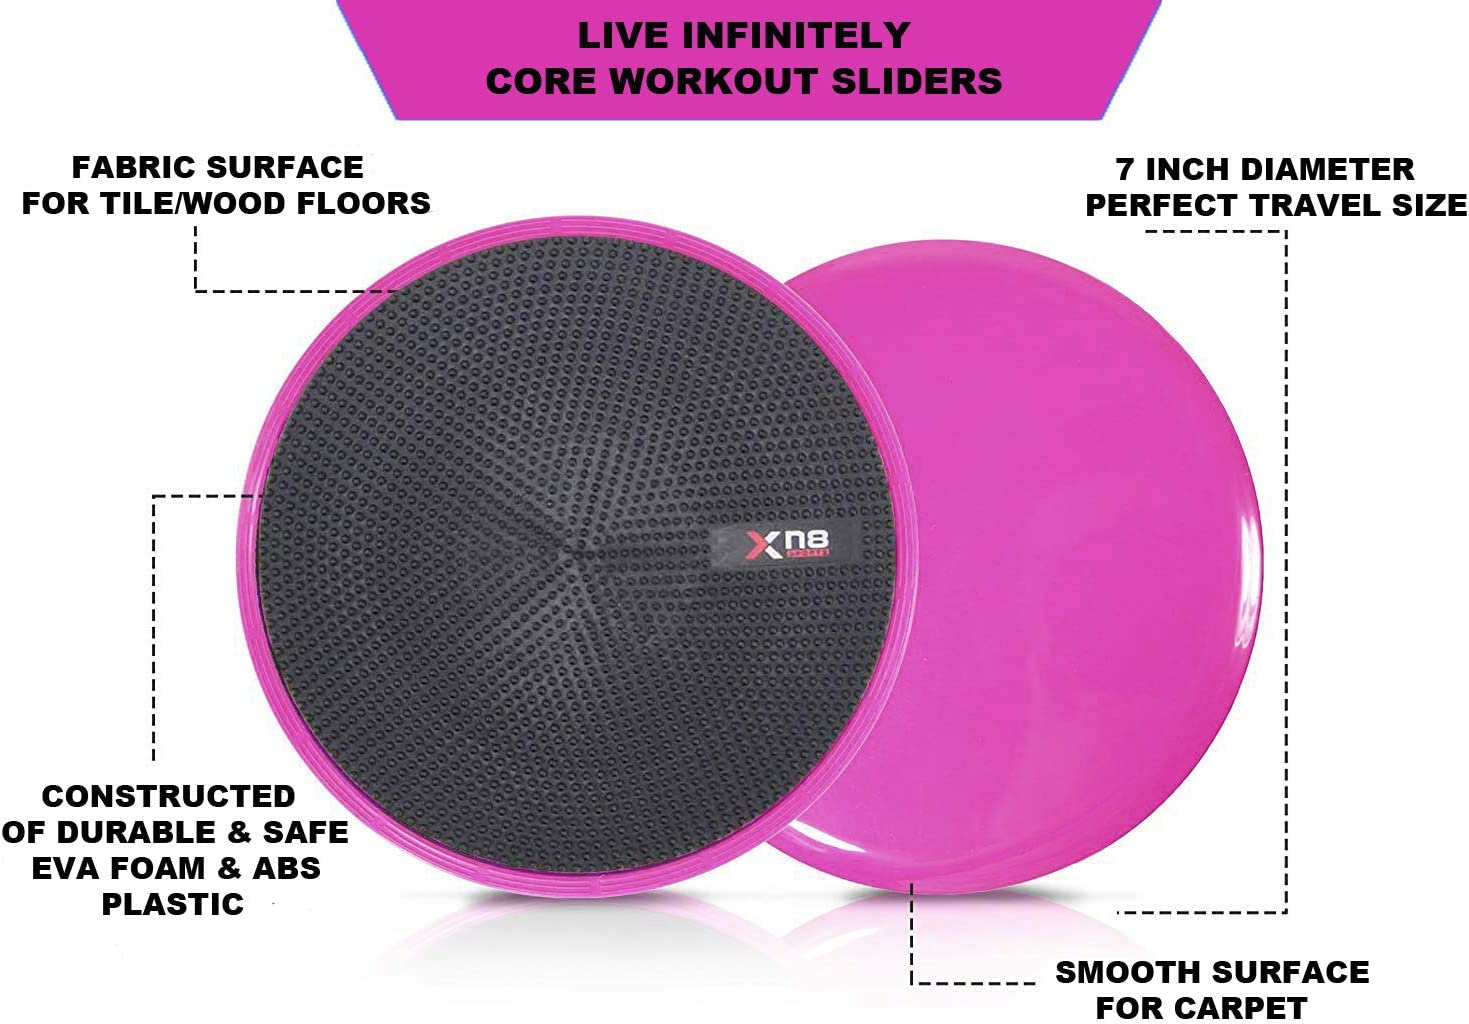 XN8 Pro Dotted-Core Slider Gliding Discs Double Sided Exercise Disc Trainer for Abdominal abs workout-Crossfit-Gym-Fitness-Yoga-Pilates-Trainer-on Carpet and Hard Floors